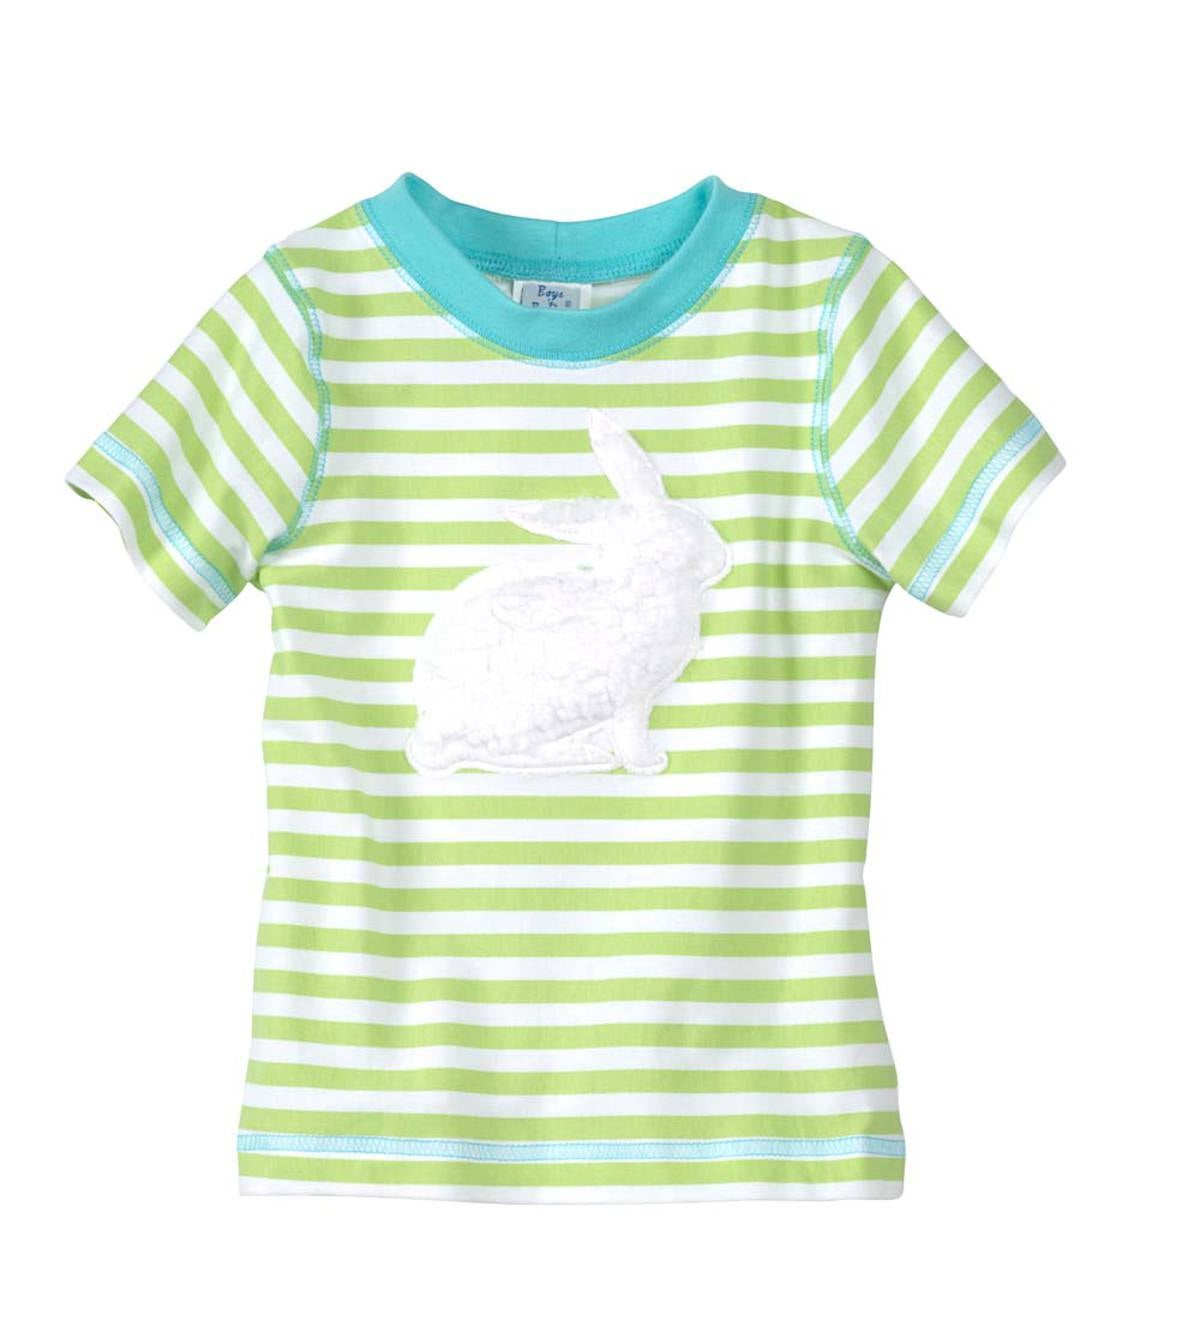 Short Sleeve Striped Bunny Tee - Multi - 12M